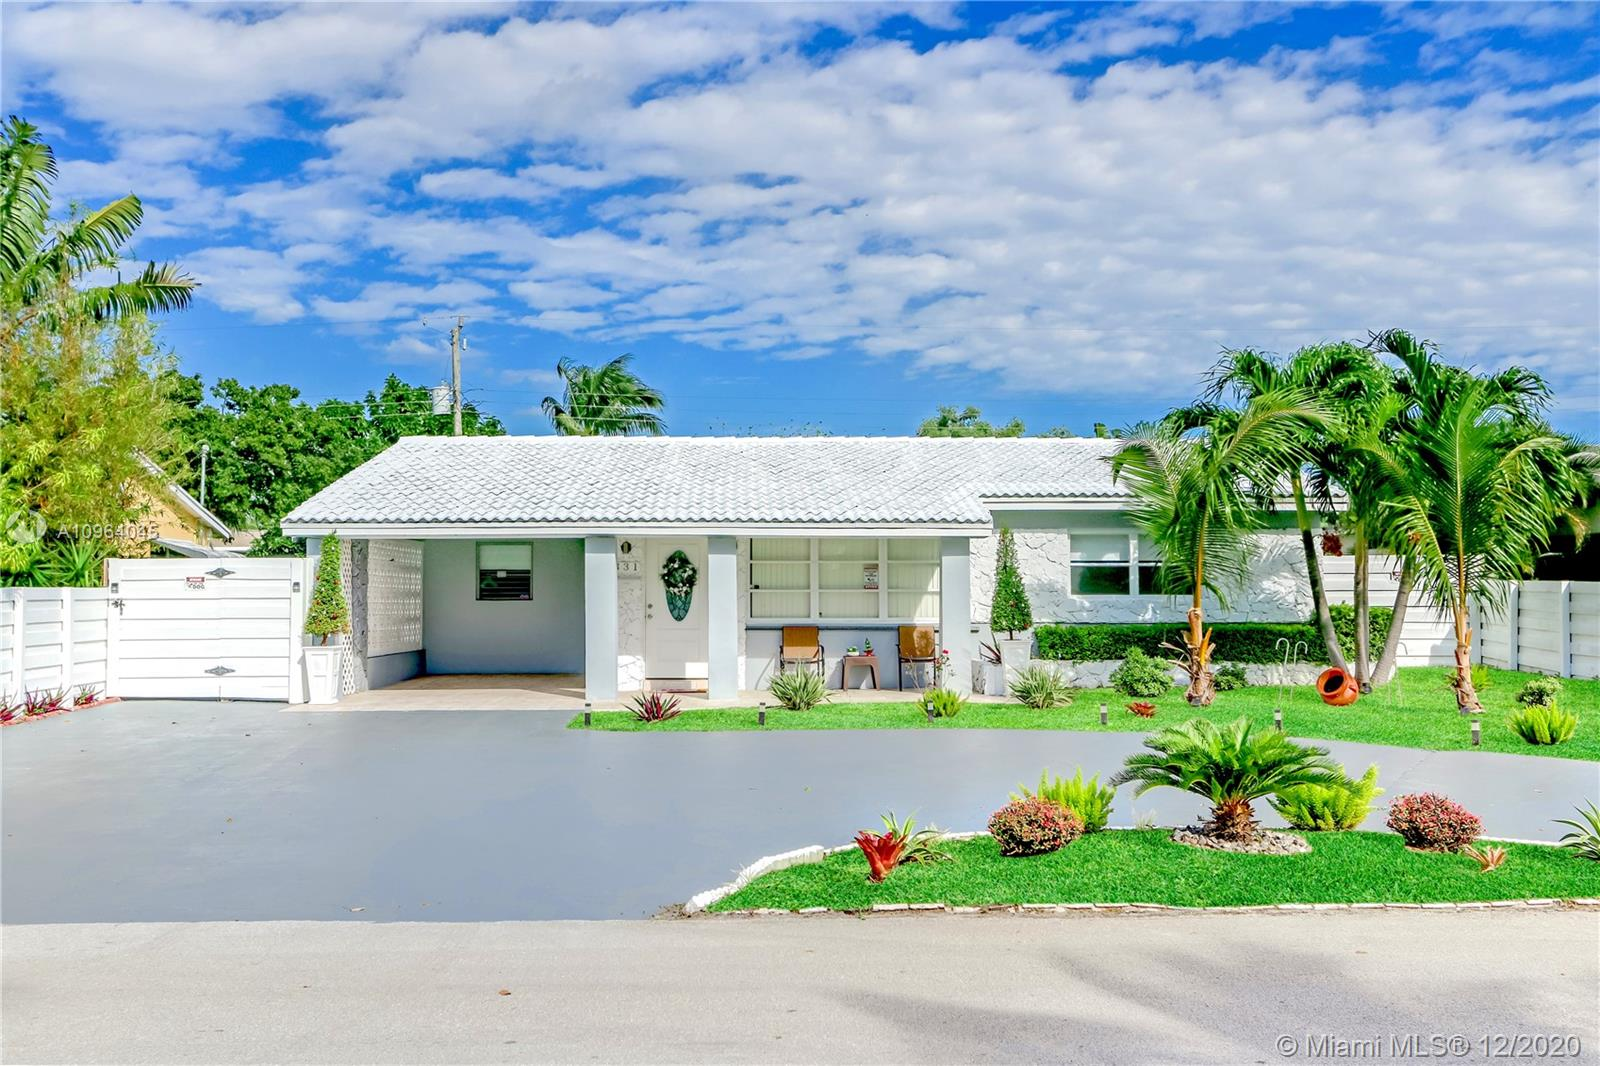 Completely remodeled beauty in the heart of Oakland Park. East of 95 close to the beach. Centrally located near shopping and more. Everything has been redone. New AC, Electric Panel, Water Heater, Flooring, Kitchen, bathrooms and more, a must see.